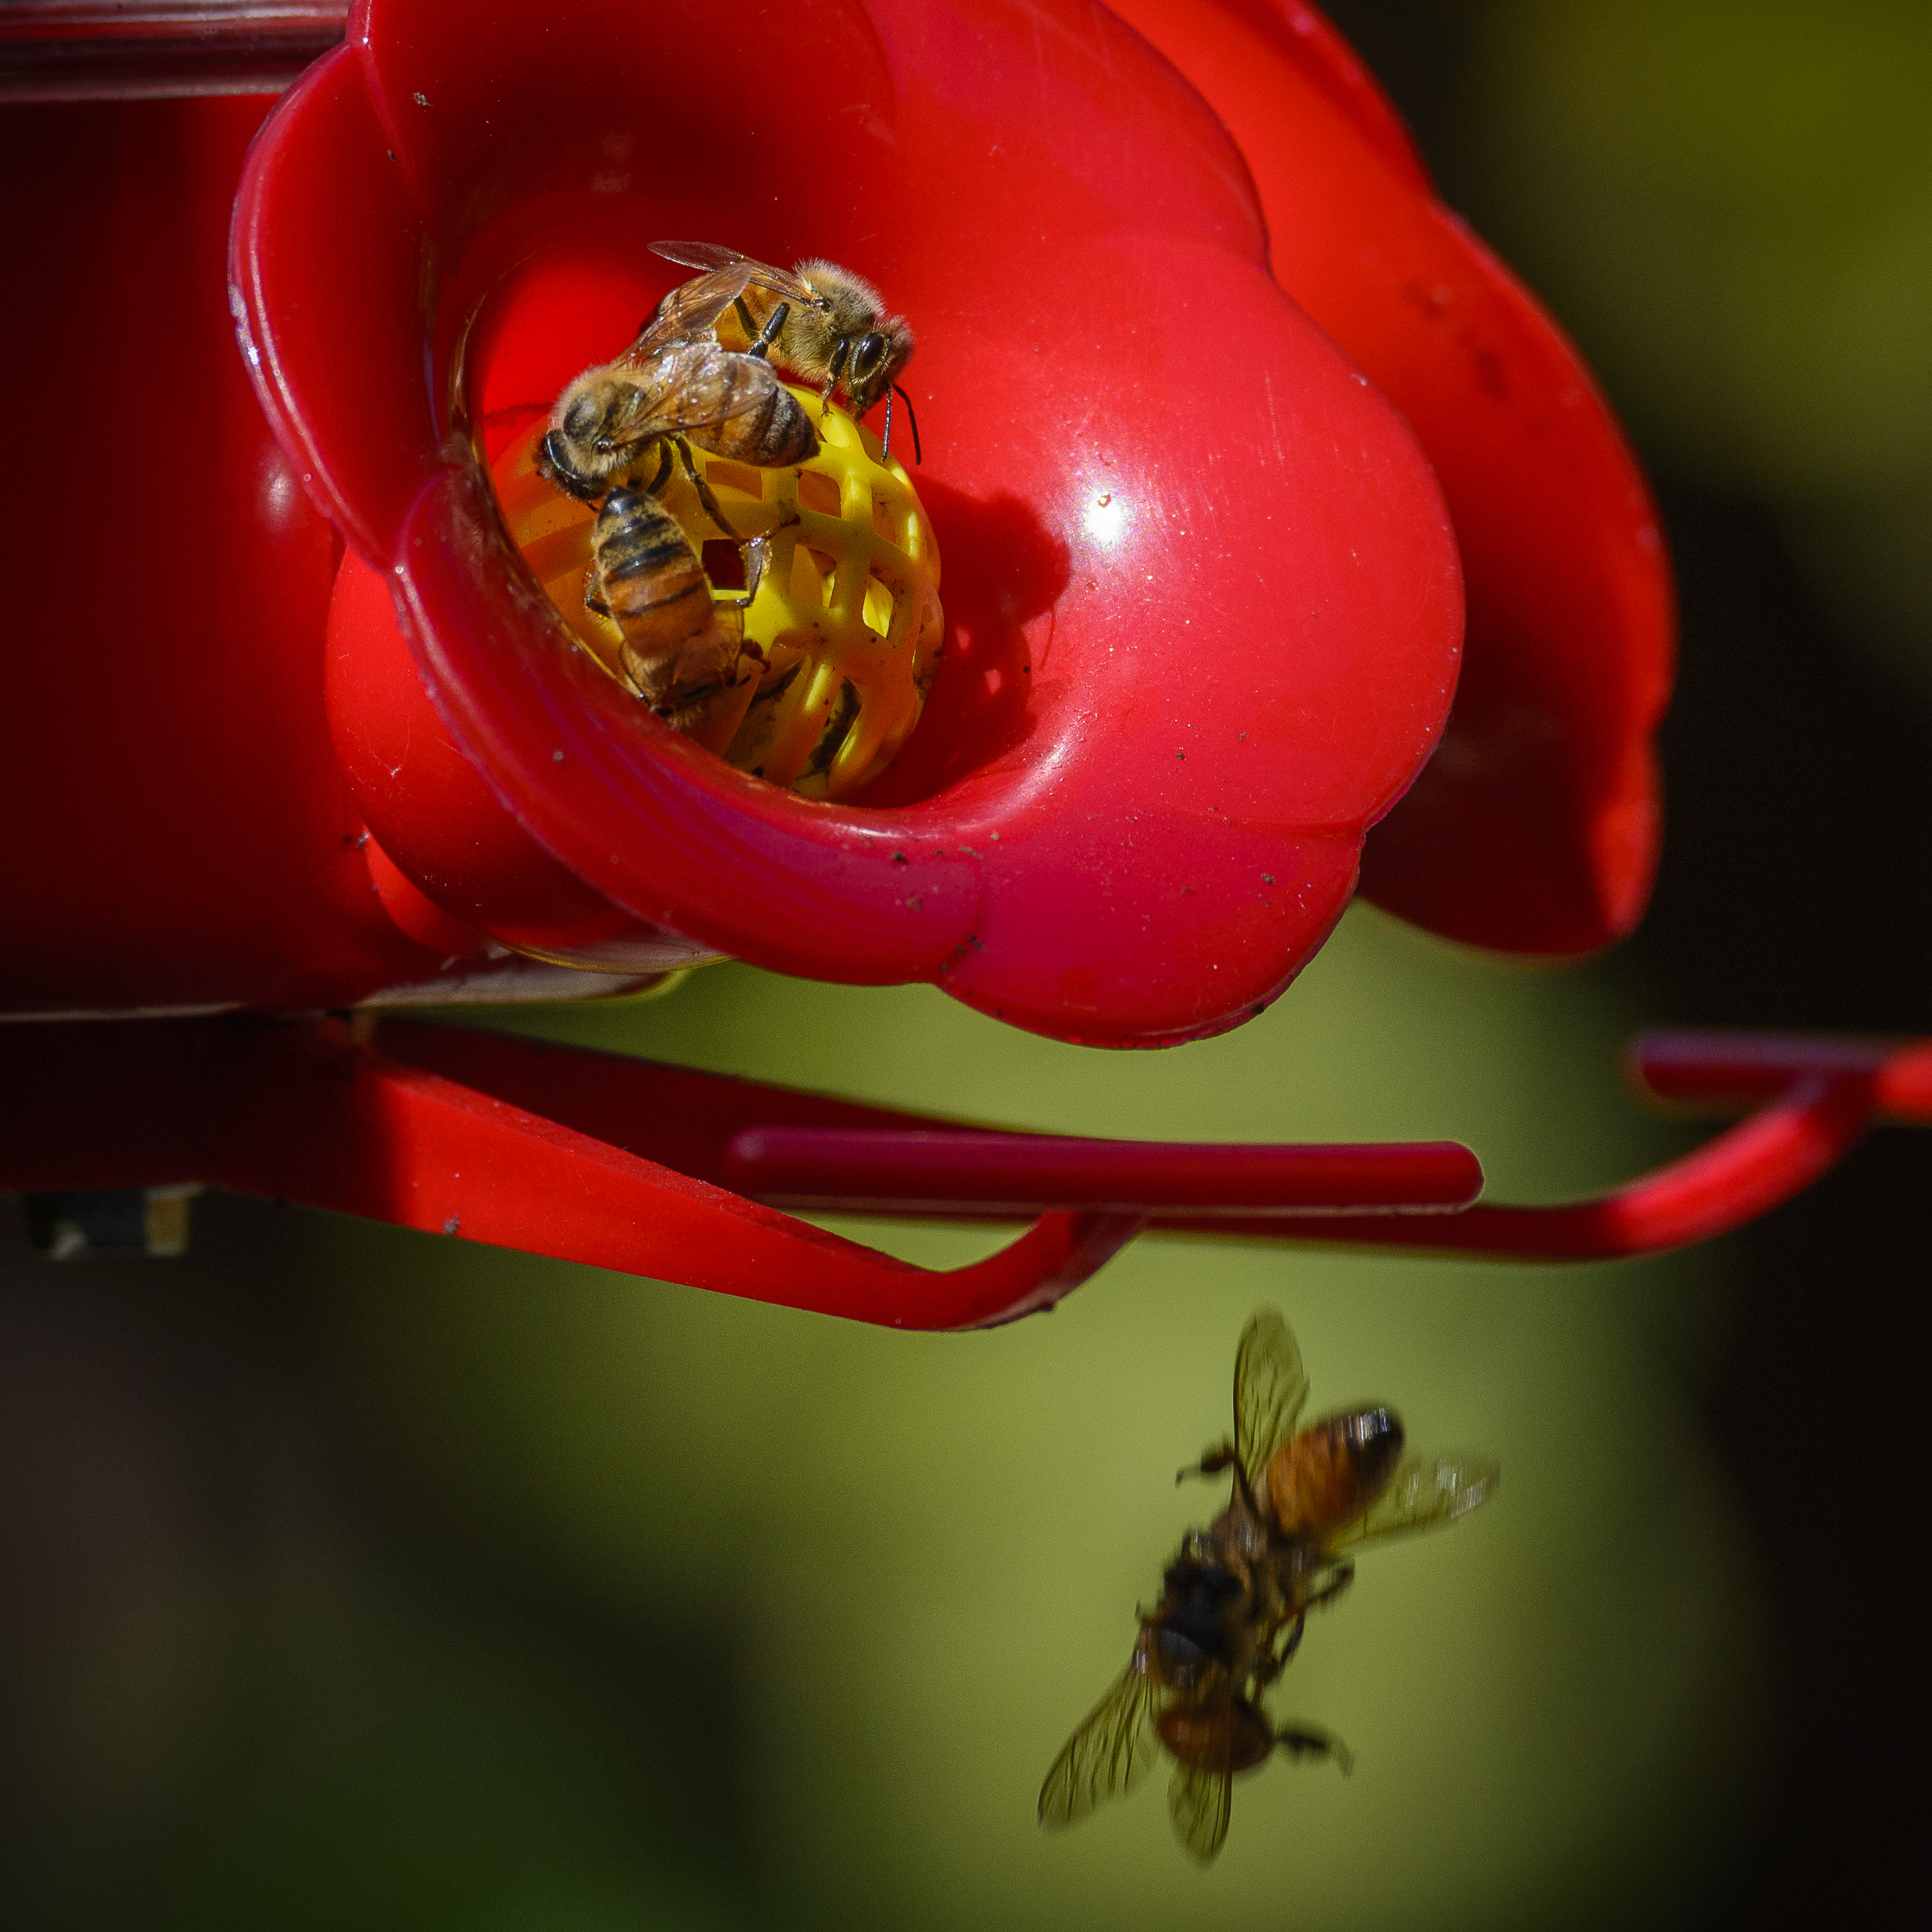 Bees -6301